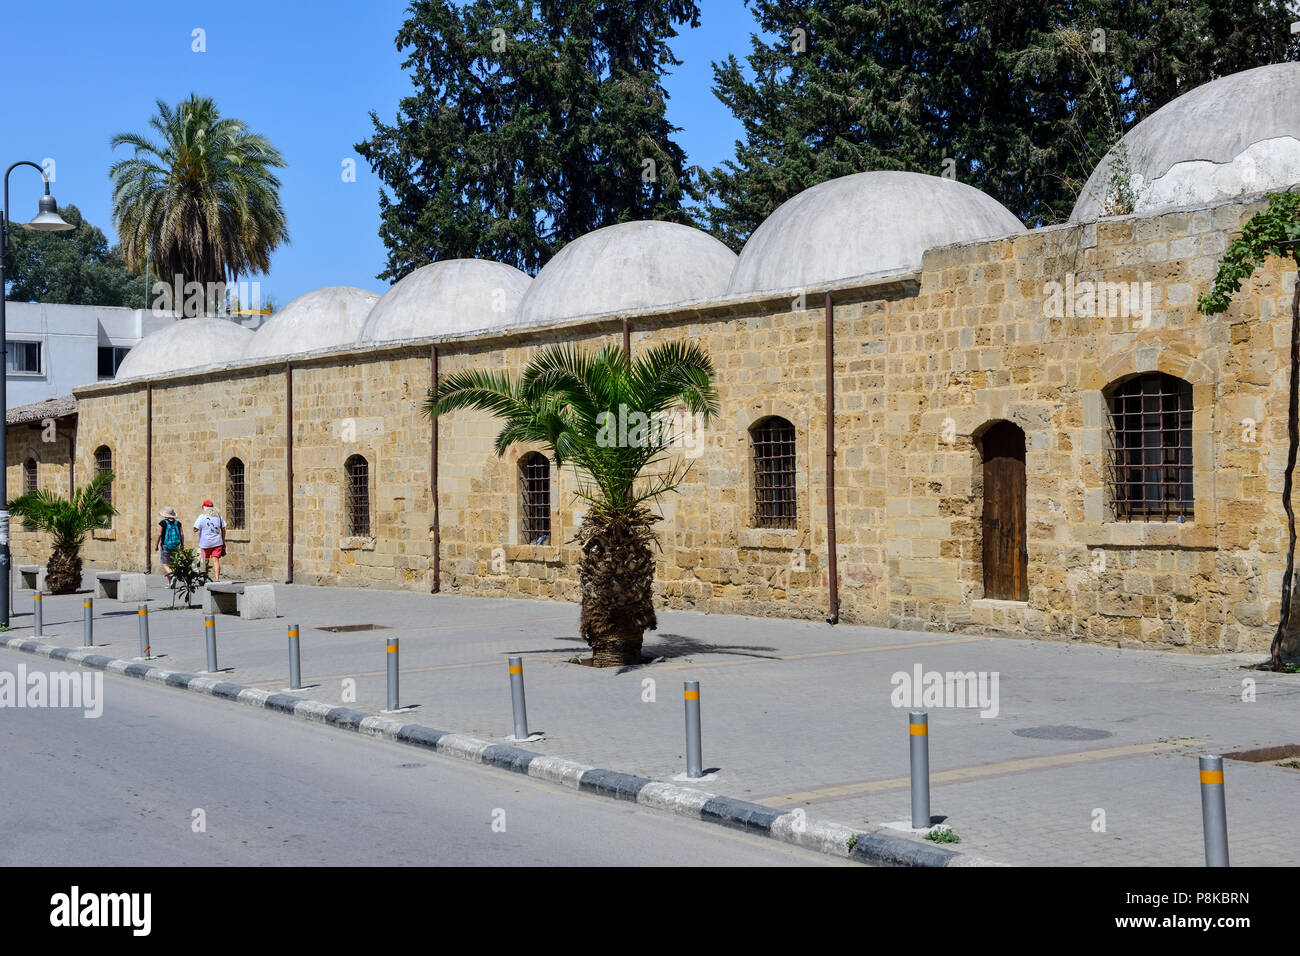 Mevlevi Tekke Museum, a former 17th Century Tekke of the Mevlevi Order, in North Nicosia (Lefkosa), Turkish Republic of Northern Cyprus - Stock Image